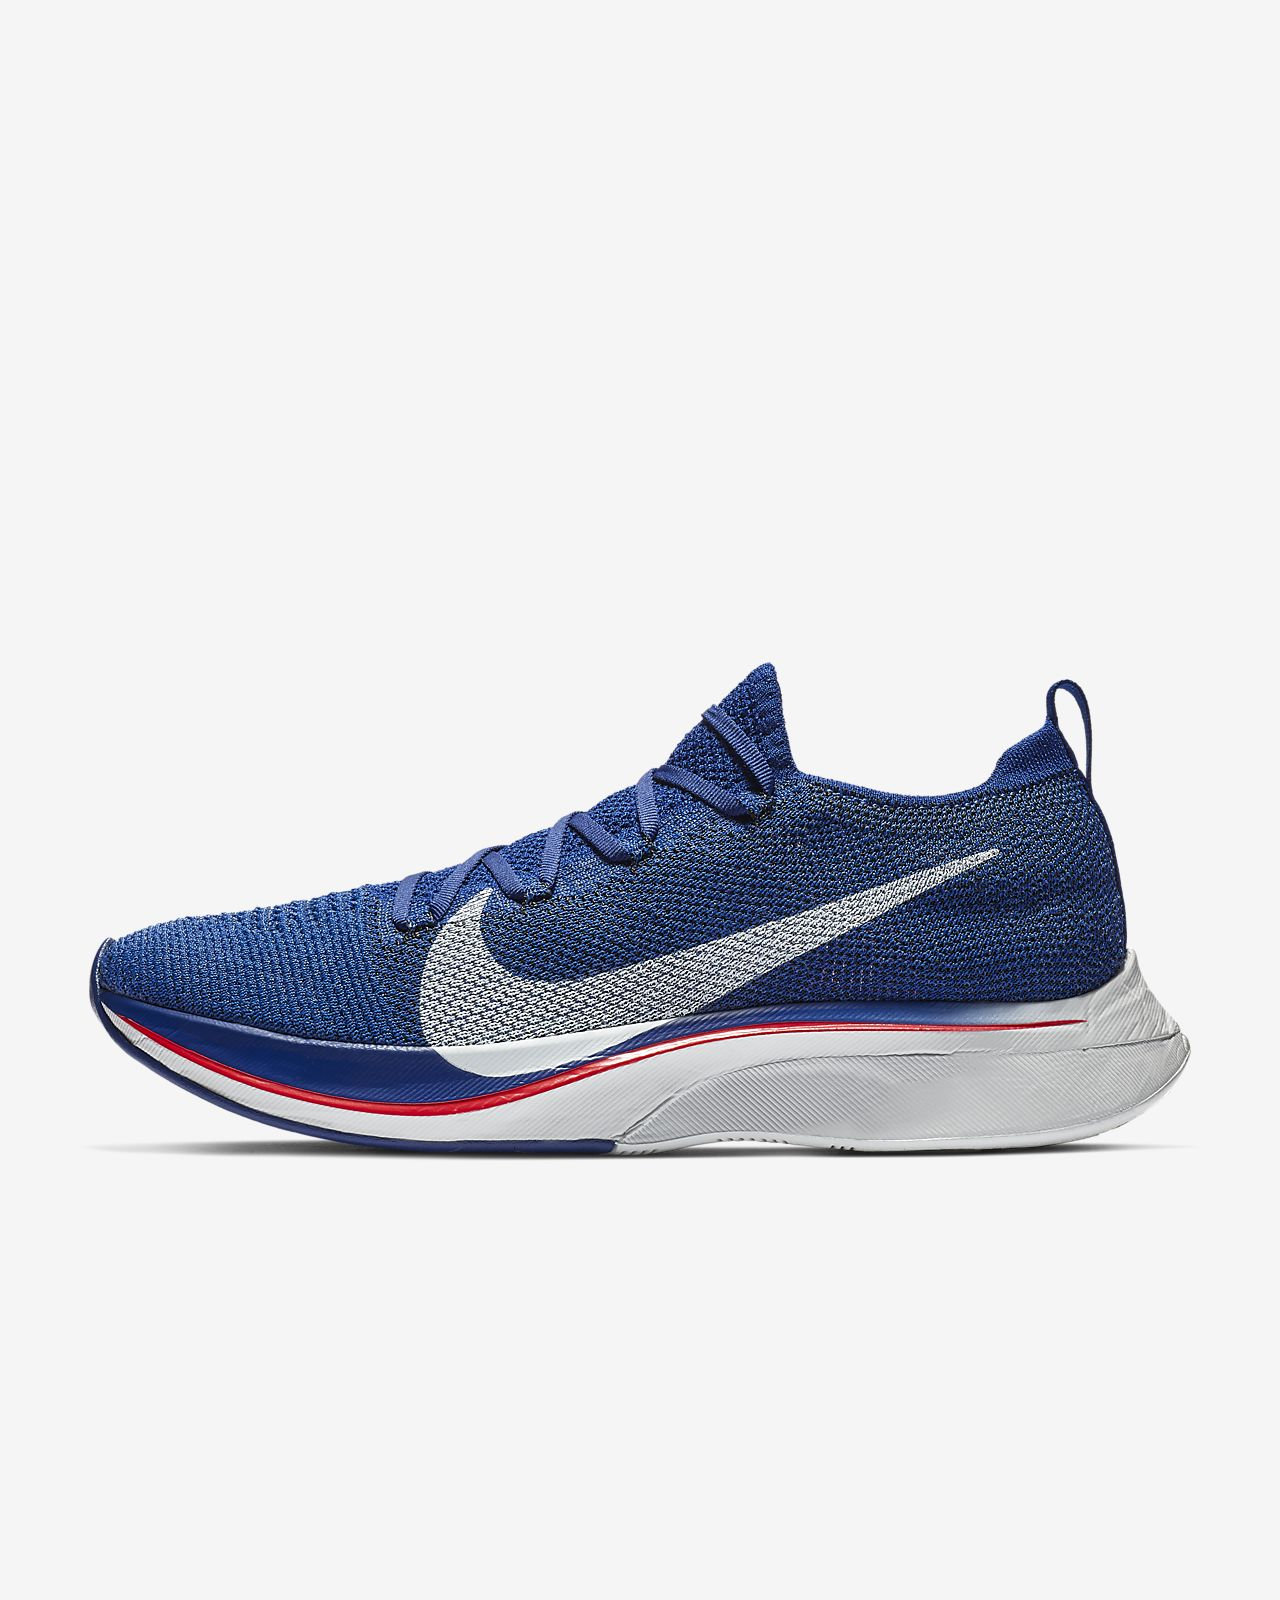 Nike Vaporfly 4% Flyknit Running Shoe. Nike.com